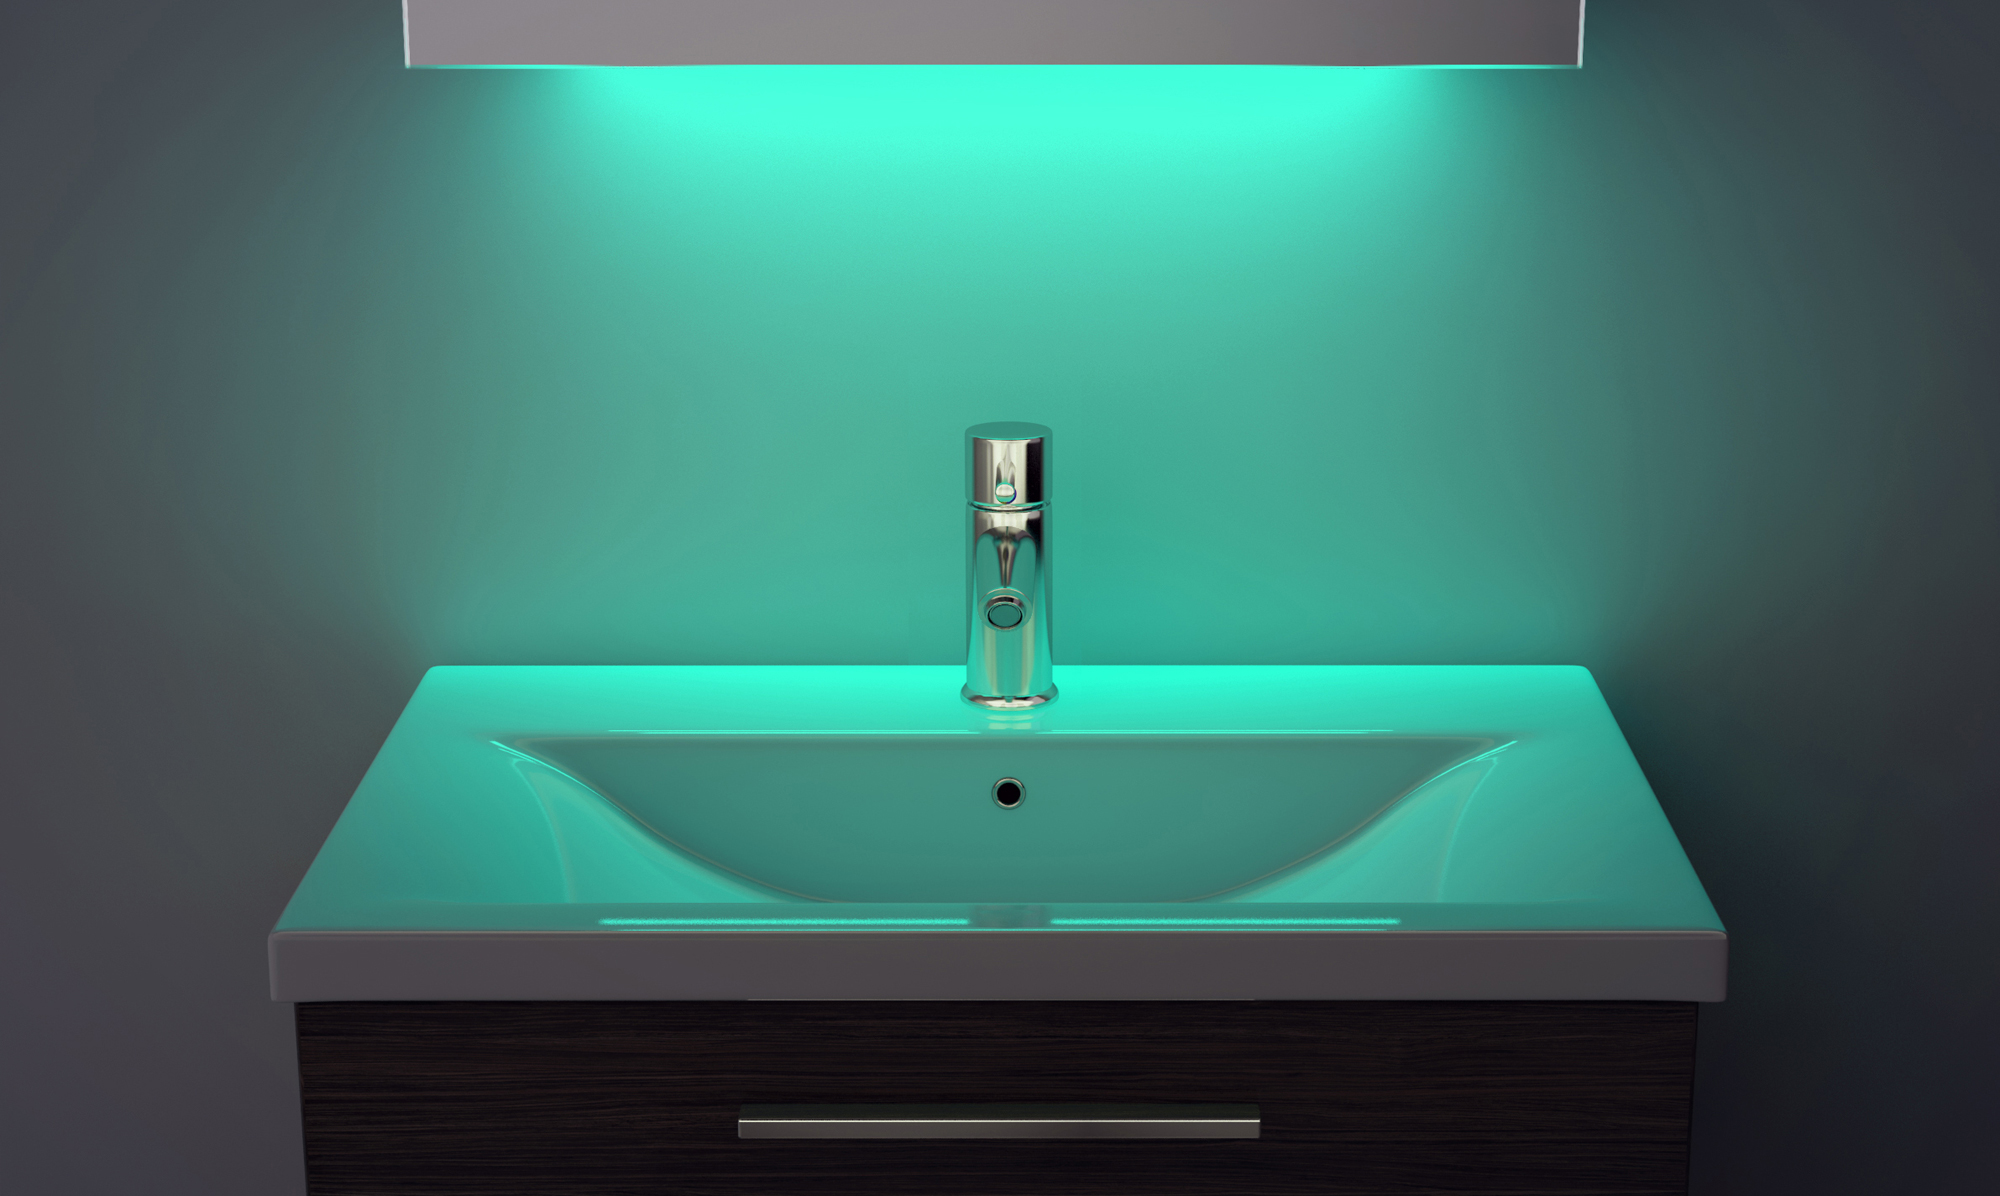 Led Bathroom Wall Cabinet On Onbuy: LED Ambient Bathroom Mirror Cabinet With Sensor & Shaver